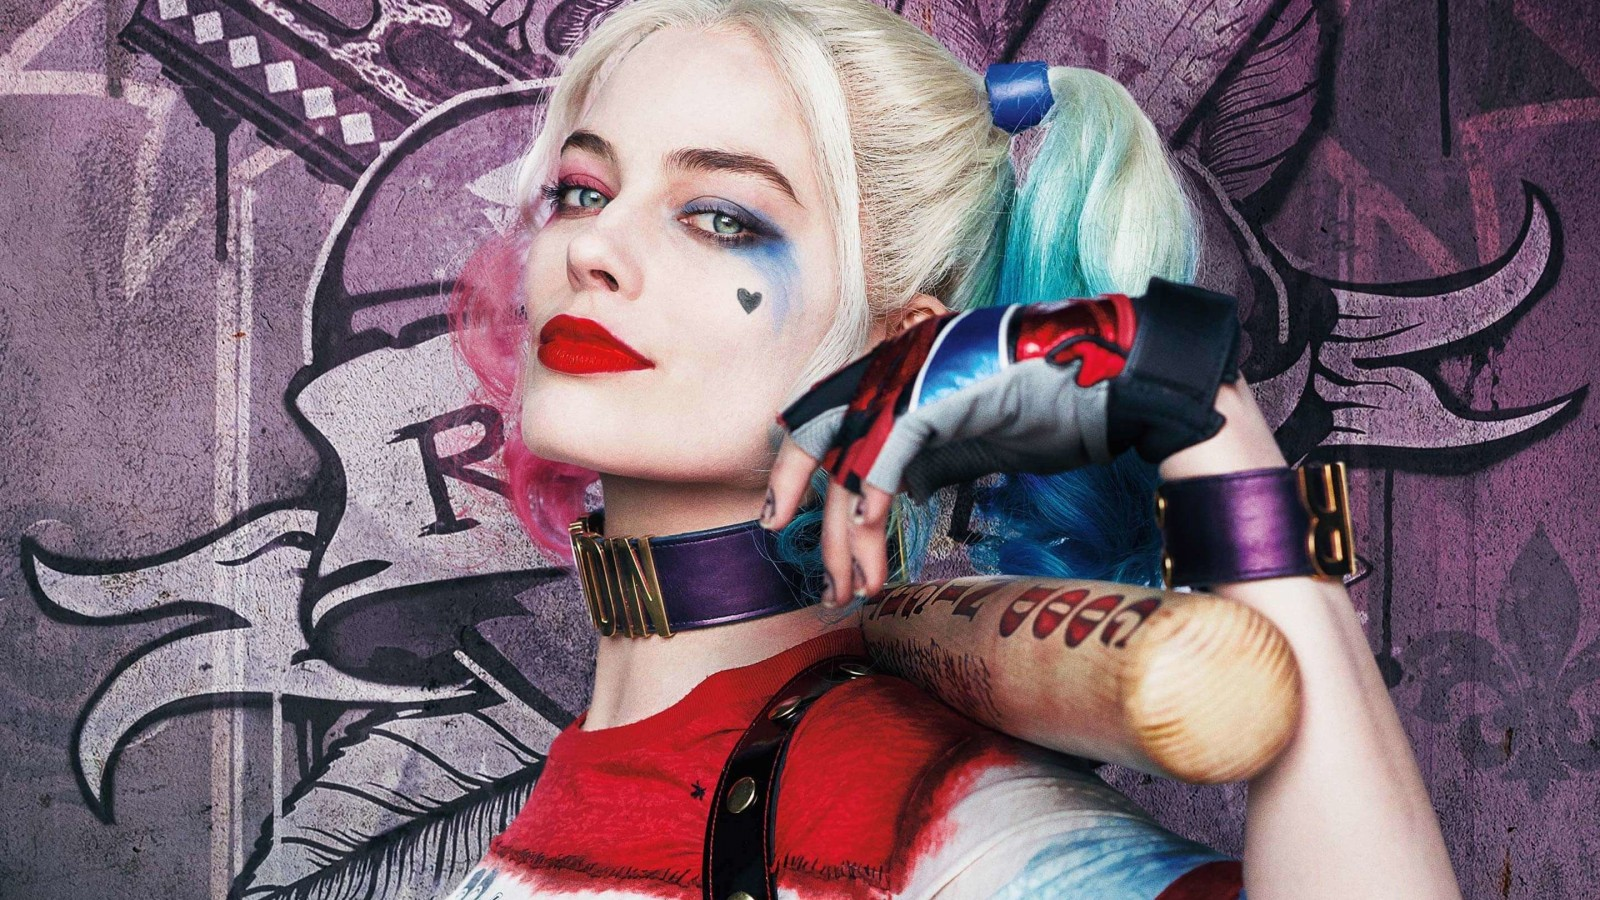 Harley Quinn - Suicide Squad Wallpaper for Desktop 1600x900